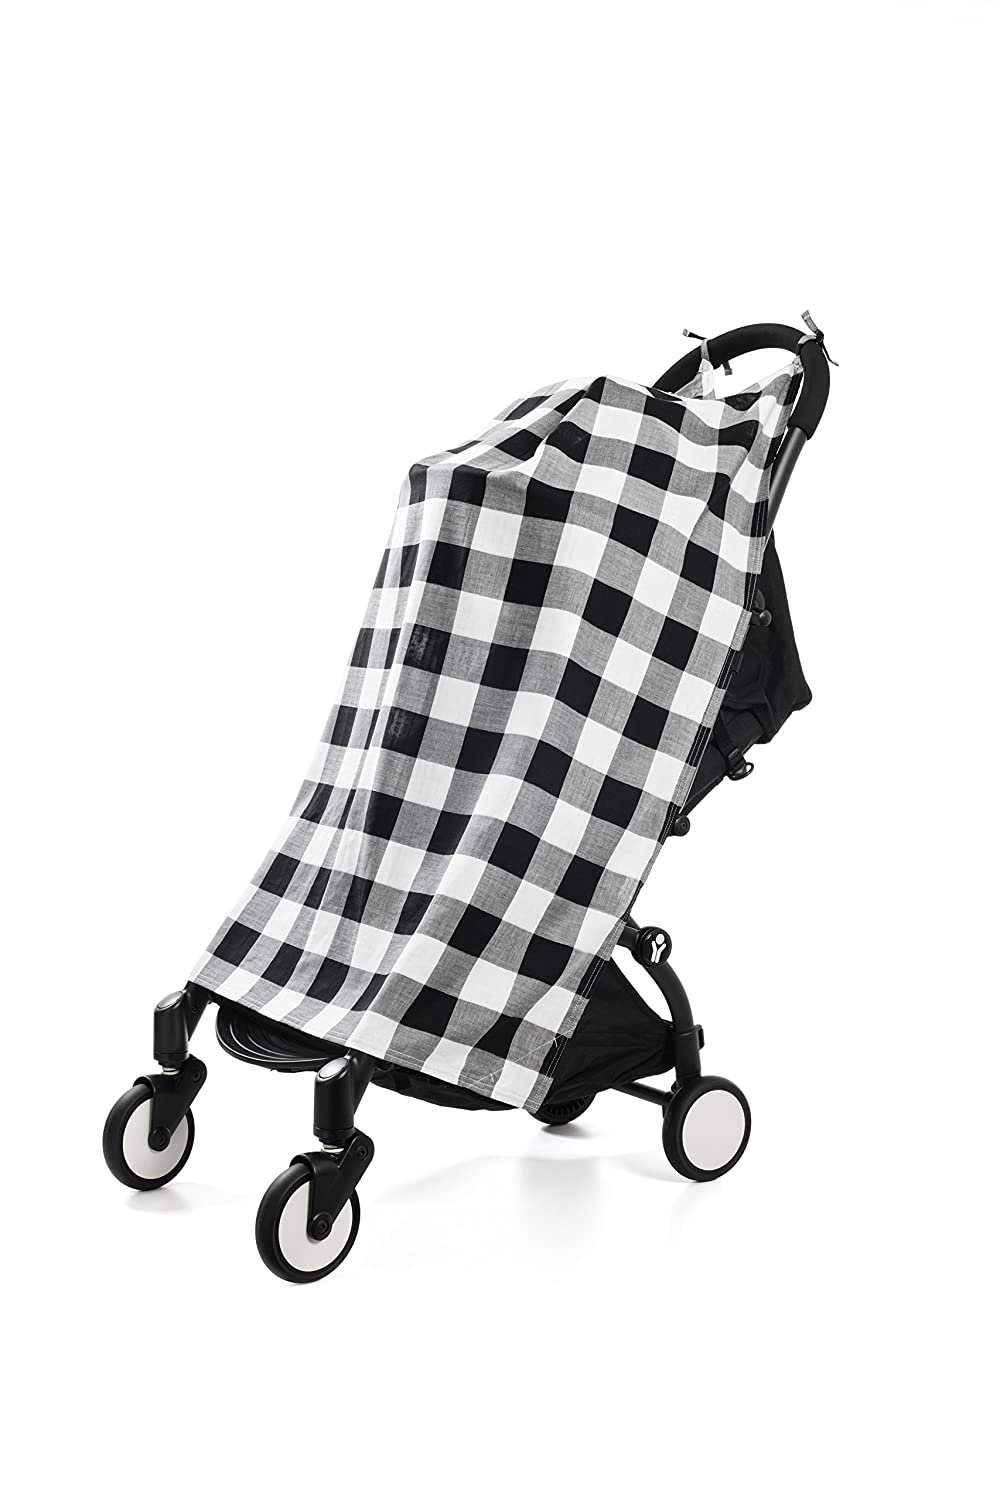 Henry and BROS.Travel, Stroller, Canopy, Baby Blankets For Boys/Baby Blankets For Girls, Newborn Baby Blanket, Made Of 100% Cotton (Black and White Buffalo Check) Henry and Brothers TRRBF15